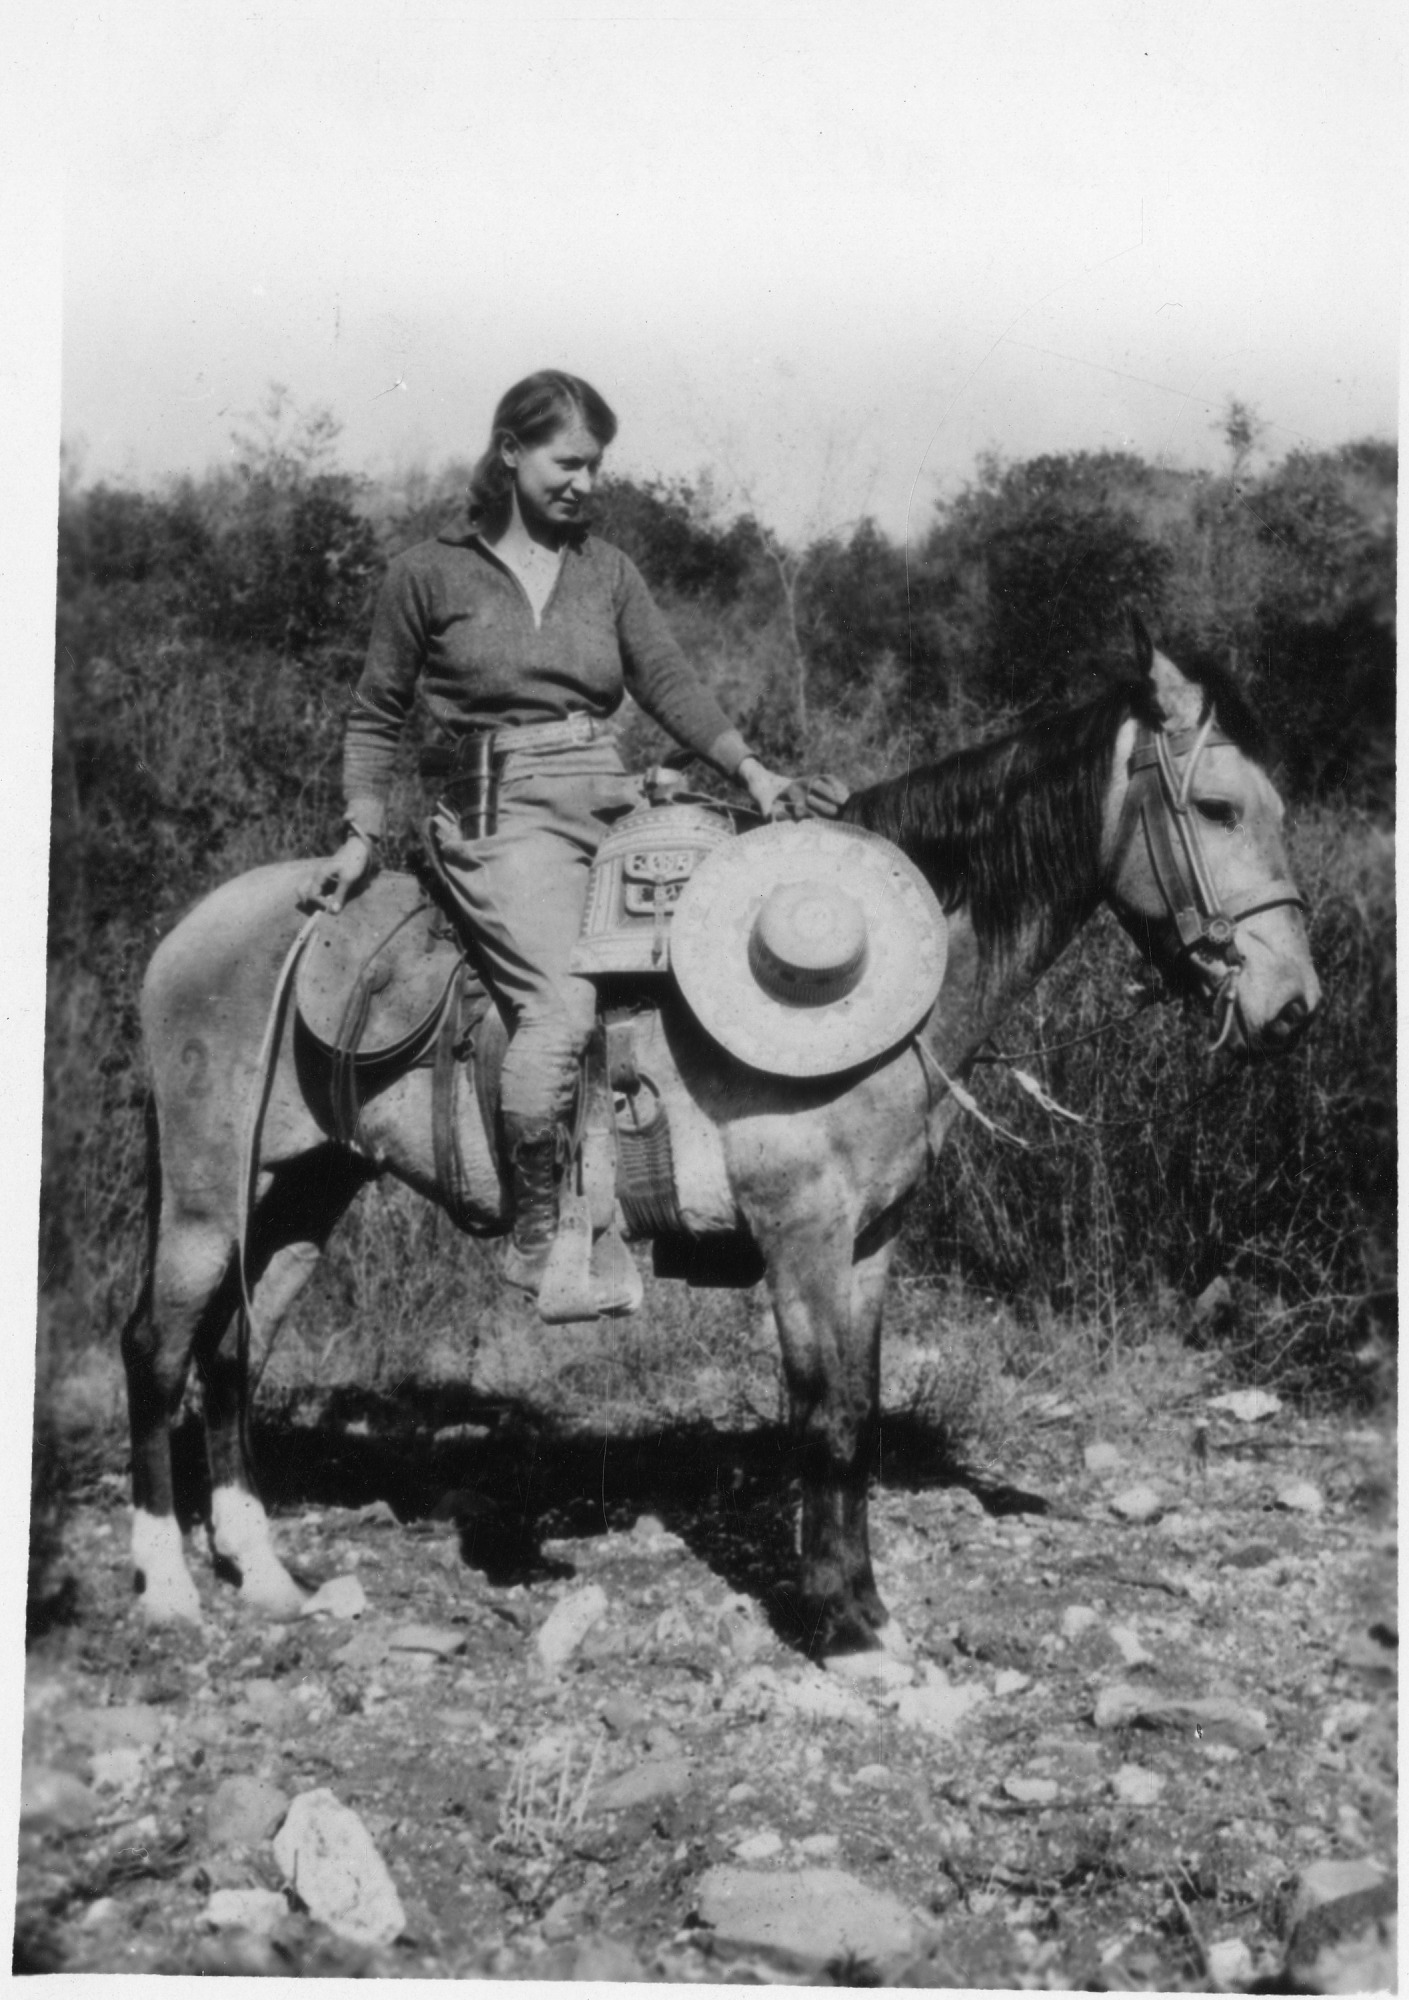 Emma Reh (1896-1982), Smithsonian Institution Archives, SIA Acc. 90-105 [SIA2009-2150].